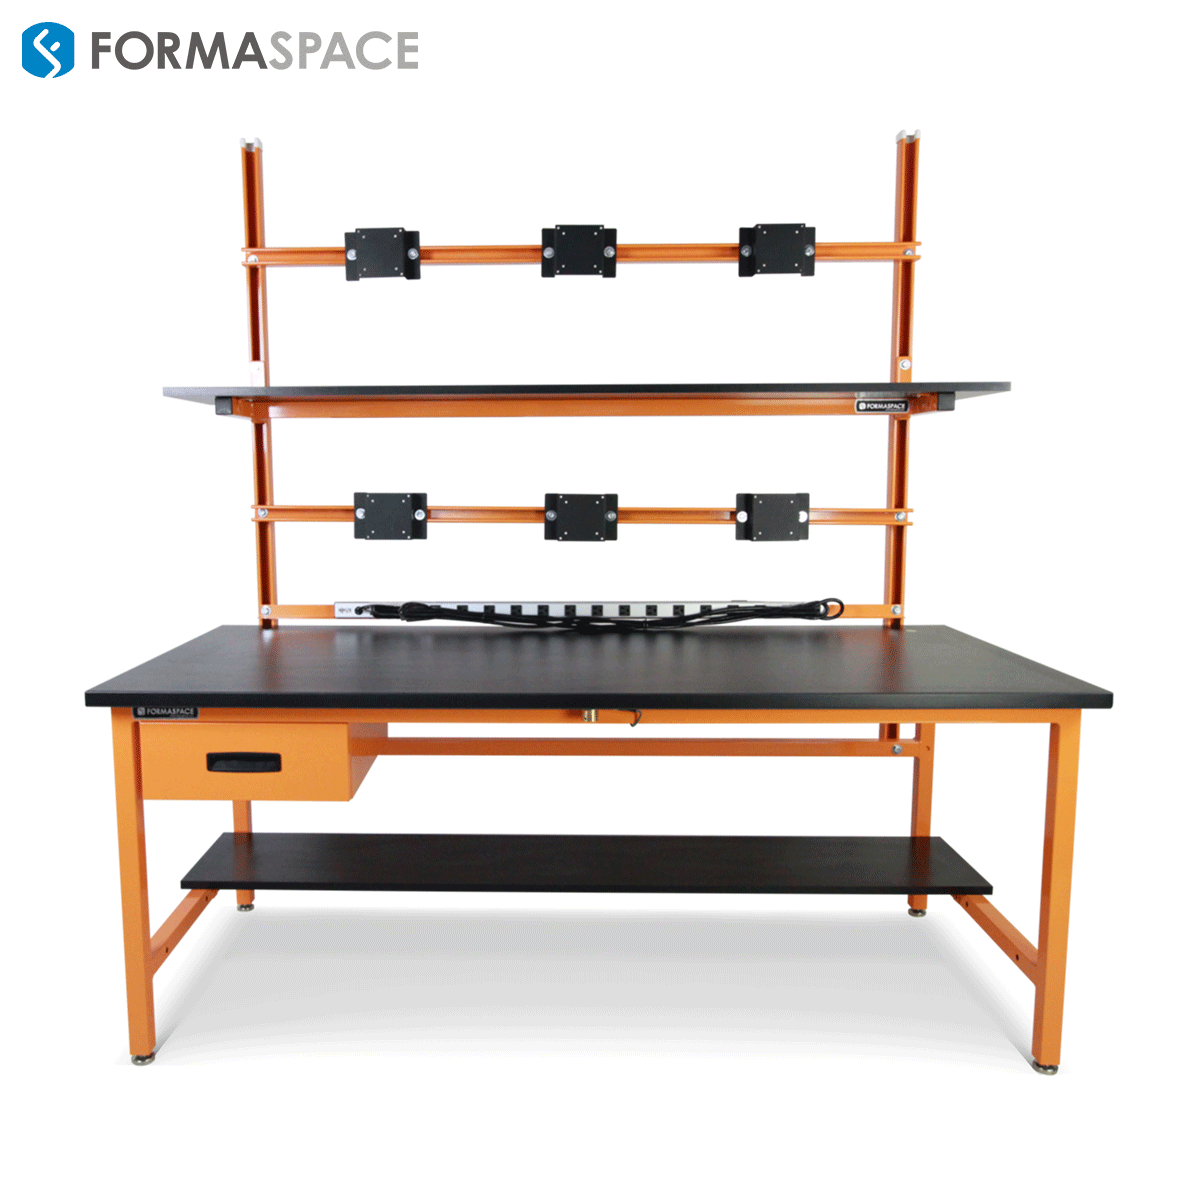 EDS workbench with upper and lower shelves and power strip